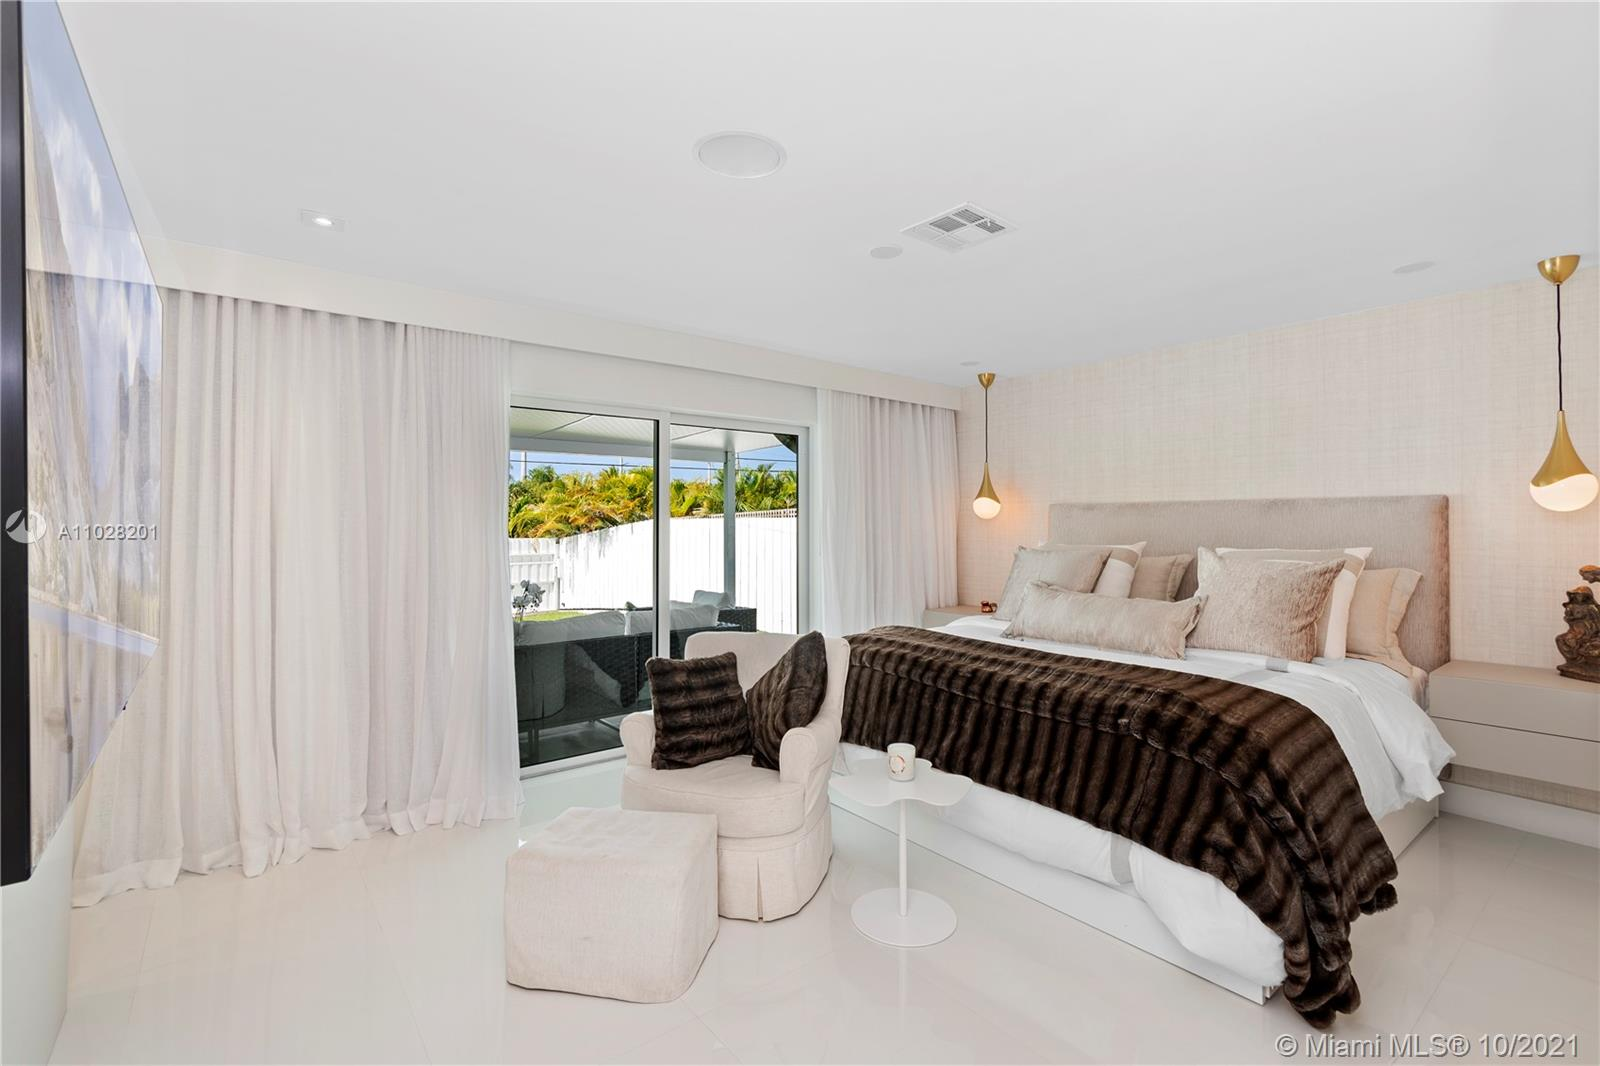 Huge master bedroom with sliding door and access to the beautiful backyard